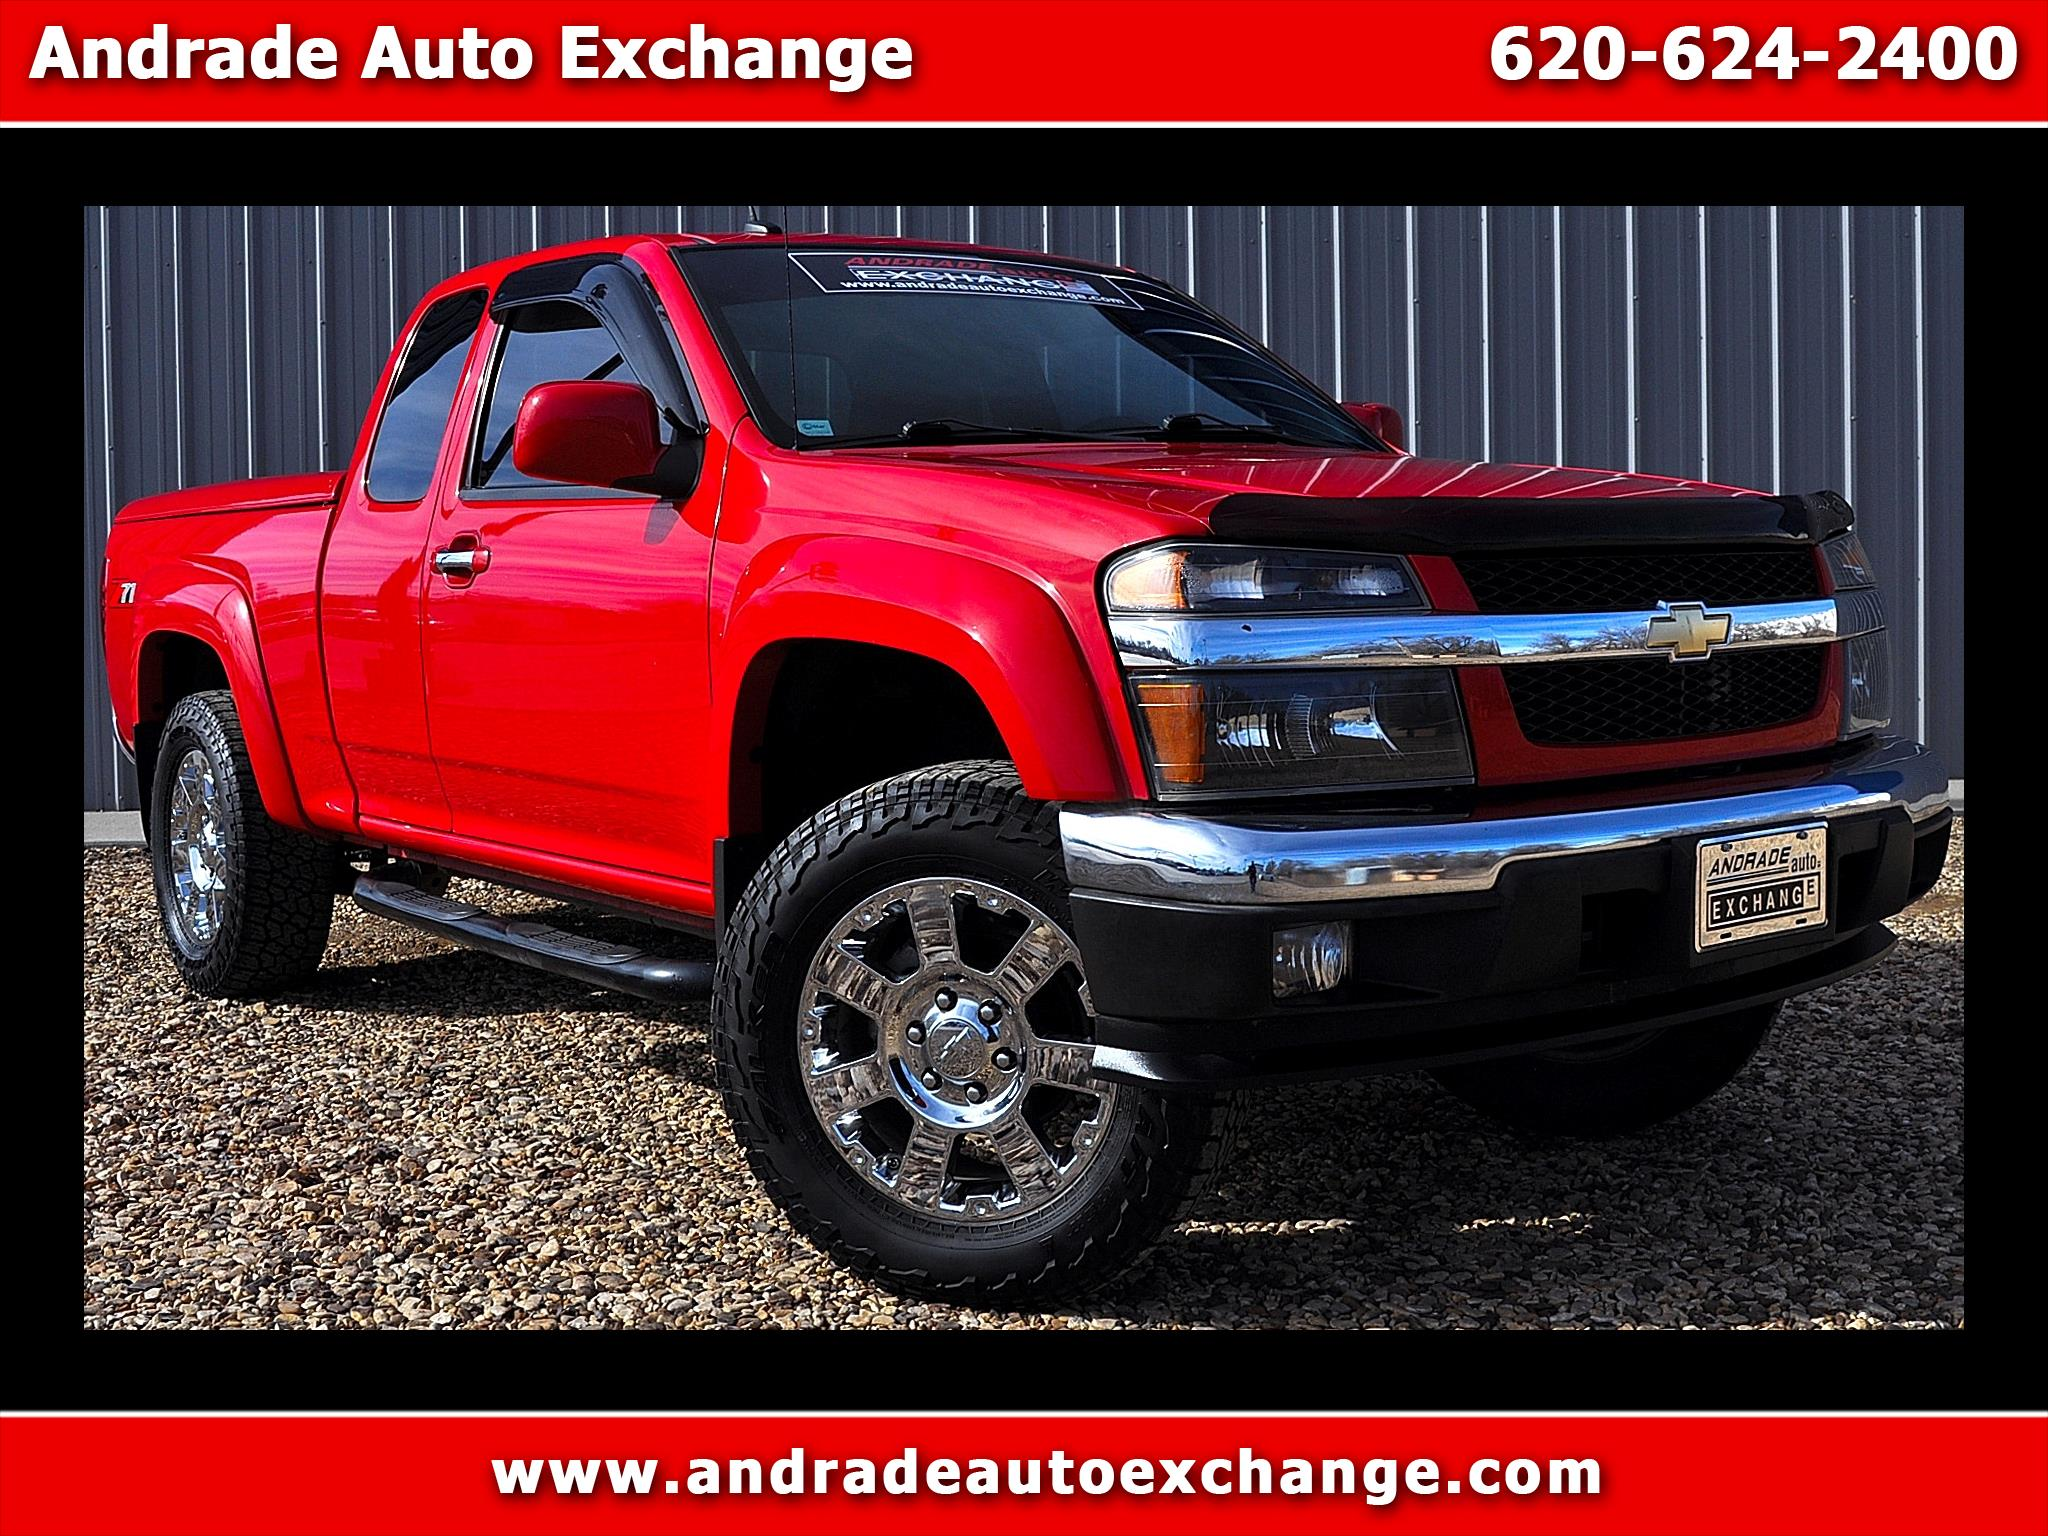 2012 Chevrolet Colorado 2LT Ext. Cab 2WD